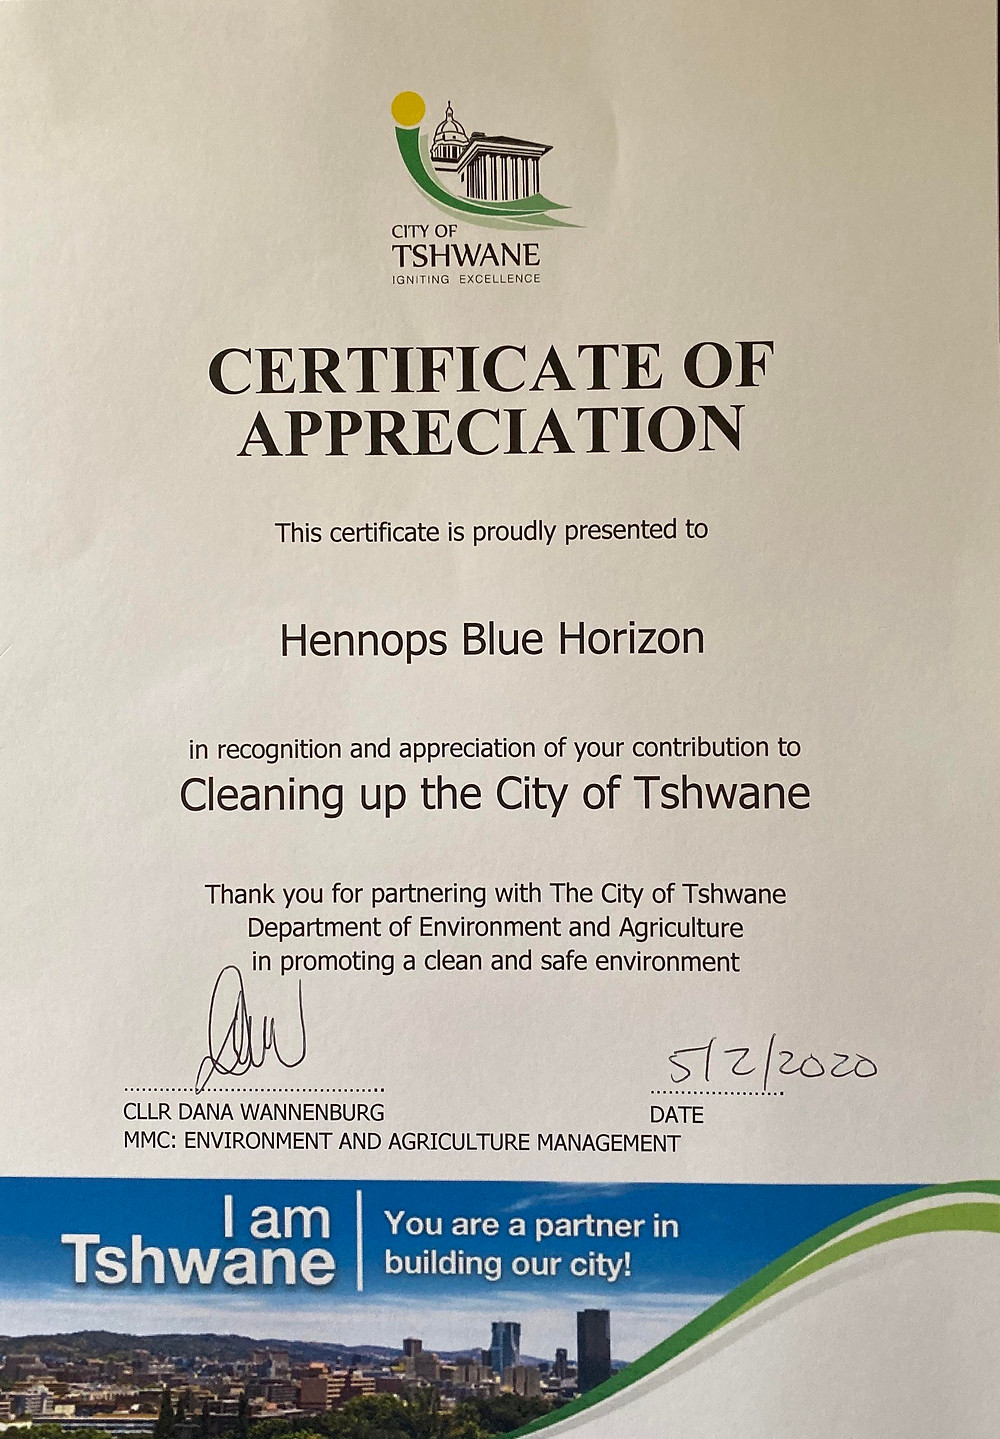 Hennops Blue Horizon received a Certificate of Appreciation for cleaning up the City of Tshwane.